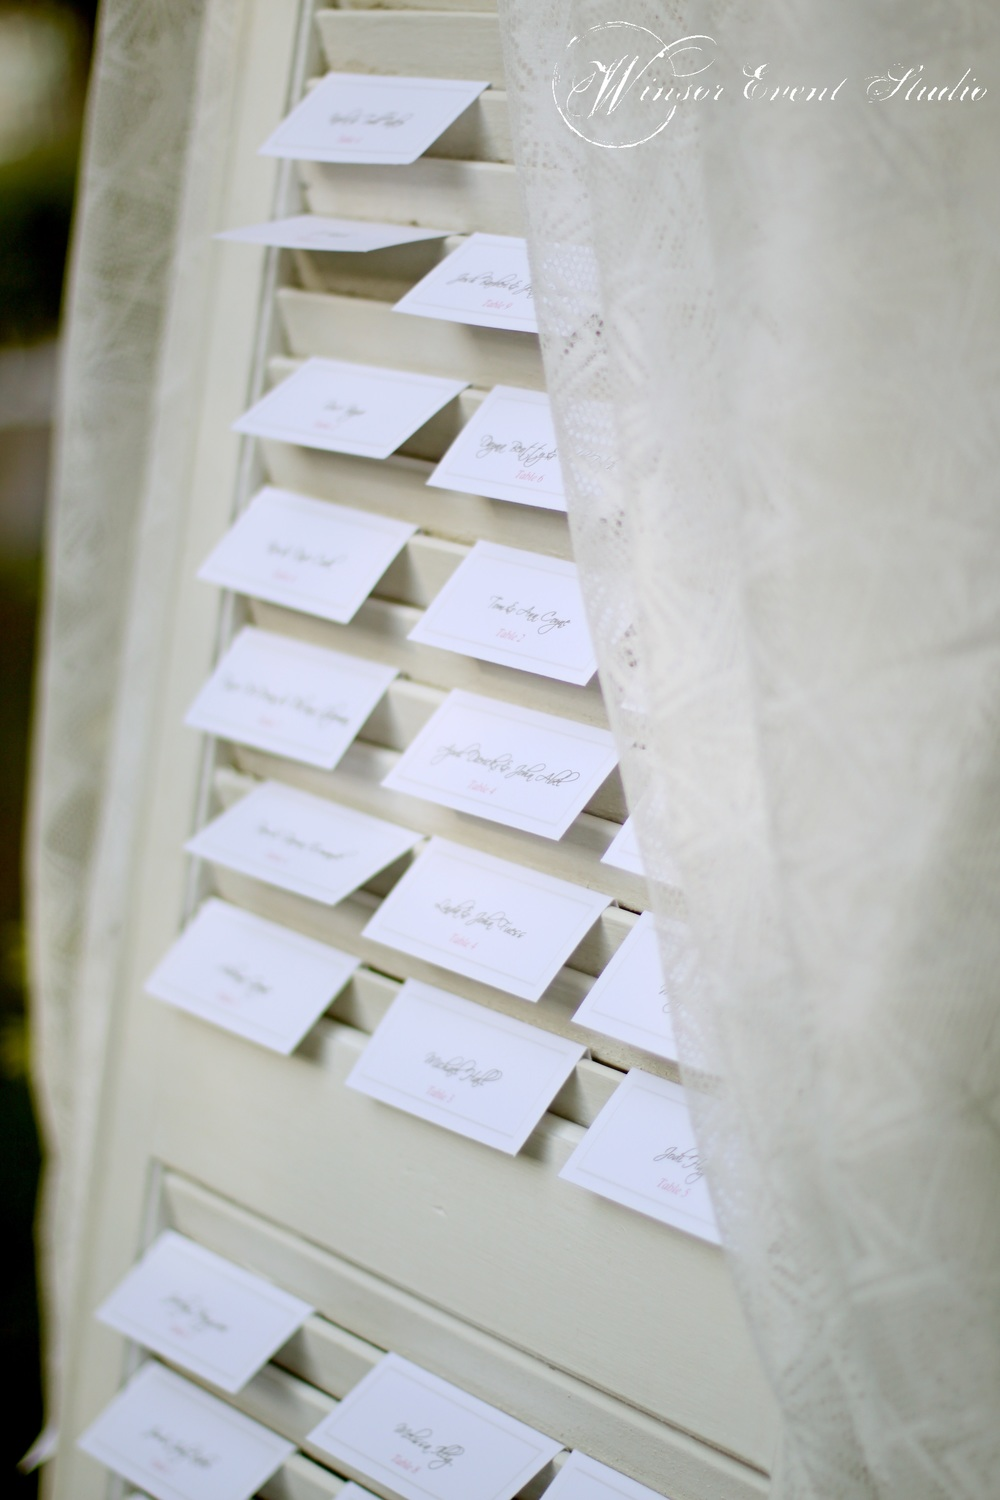 Escort cards were displayed in a vintage shutter draped with lace